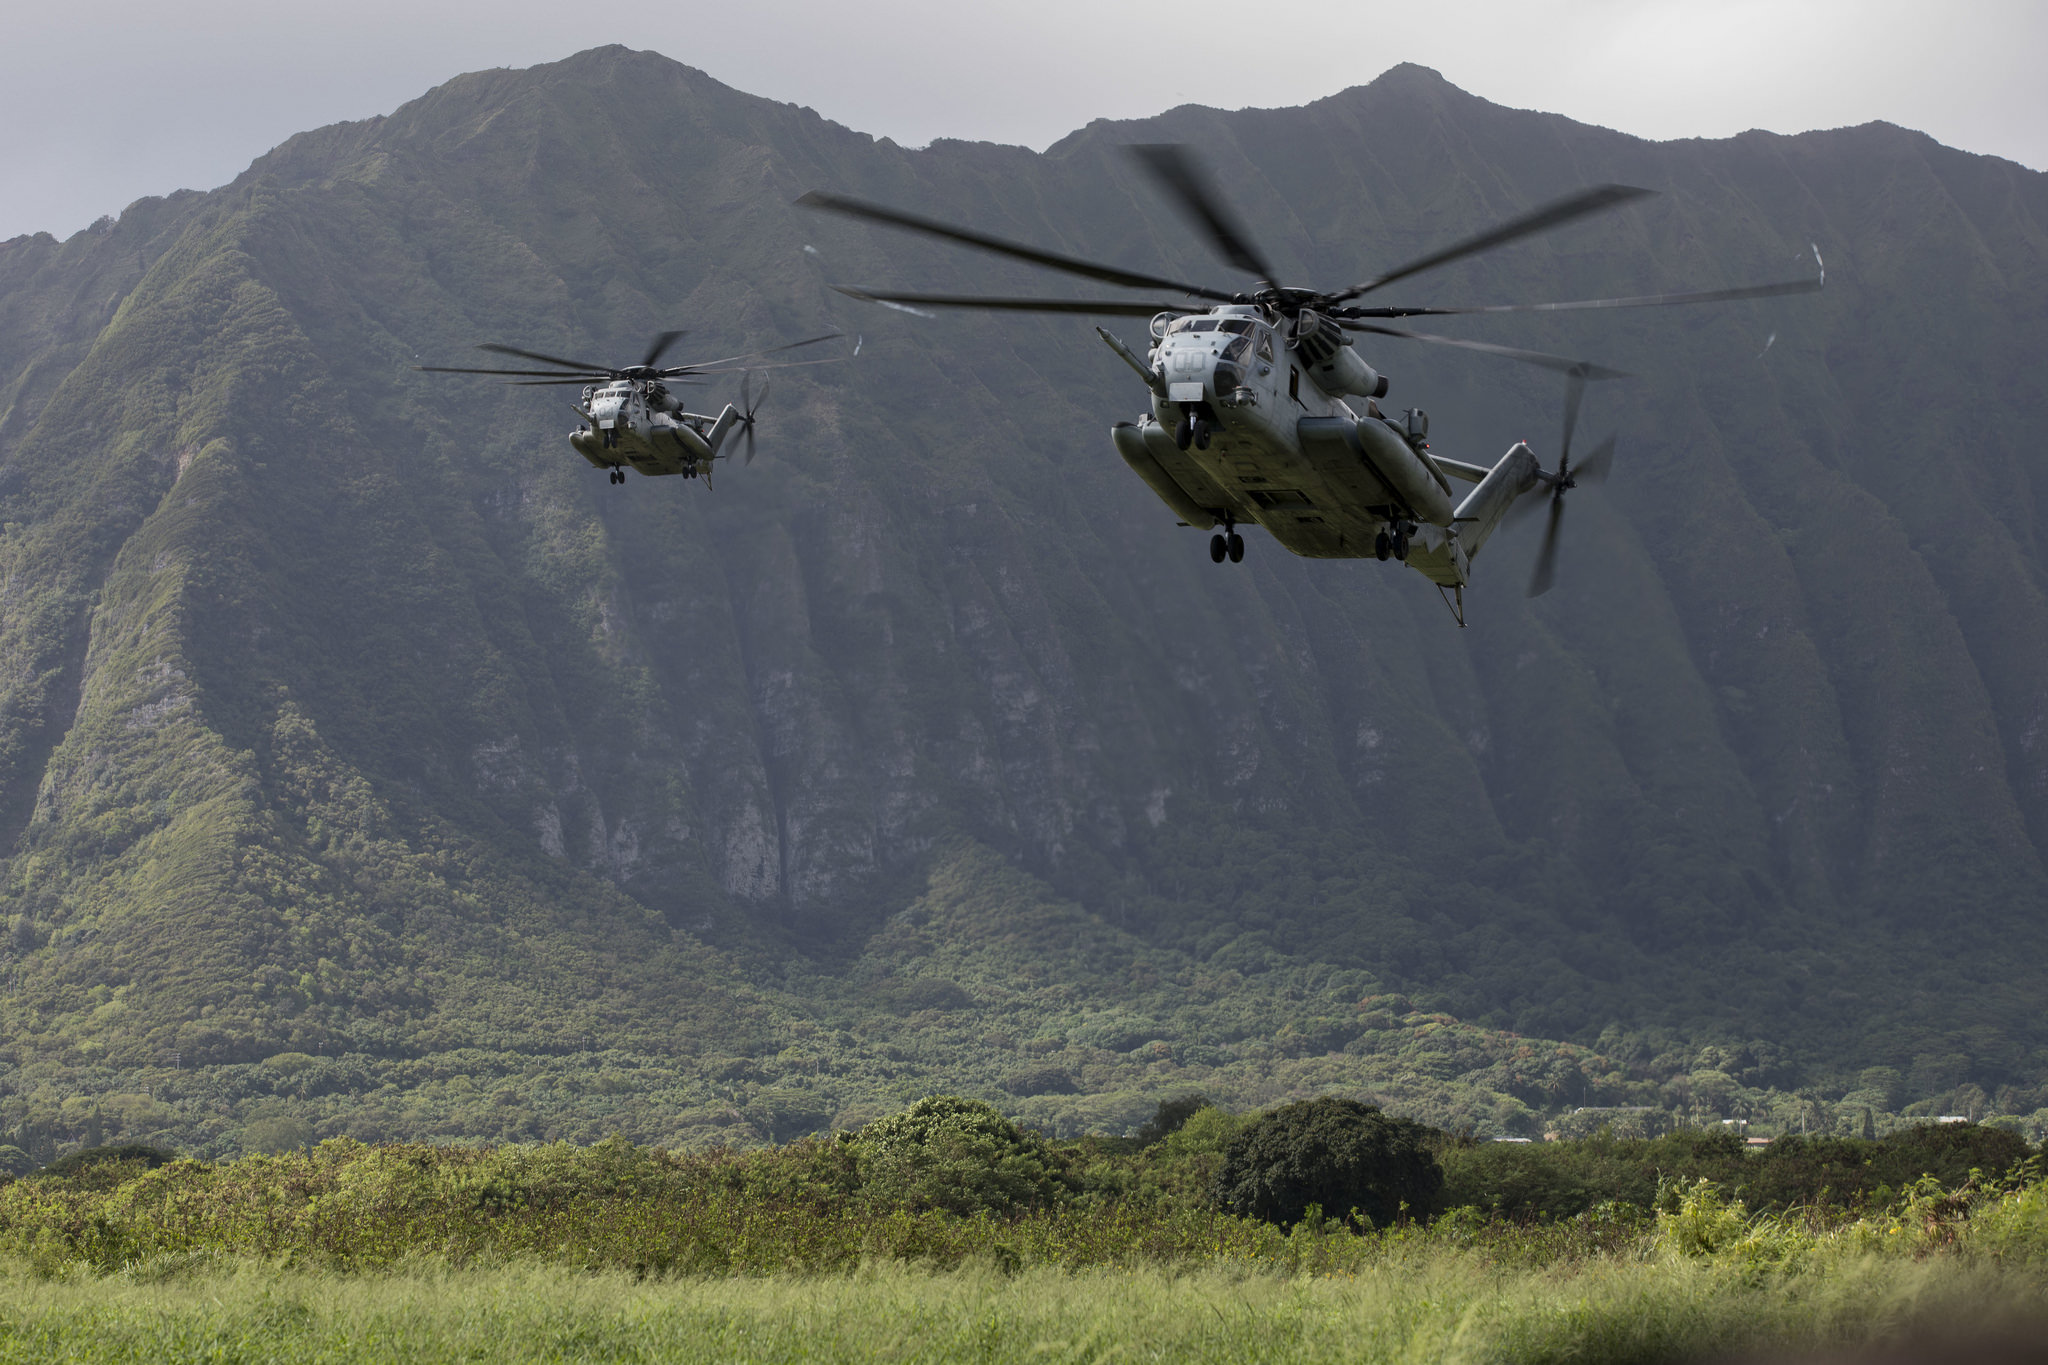 U.S. Marine Corps CH-53E Super Stallions prepare to land and drop off U.S. Marines on Sept. 18, 2018, during a helicopter insertion exercise at Marine Corps Training Area Bellows (MCTAB), Hawaii. (Sgt. Jesus Sepulveda Torres/Marine Corps)